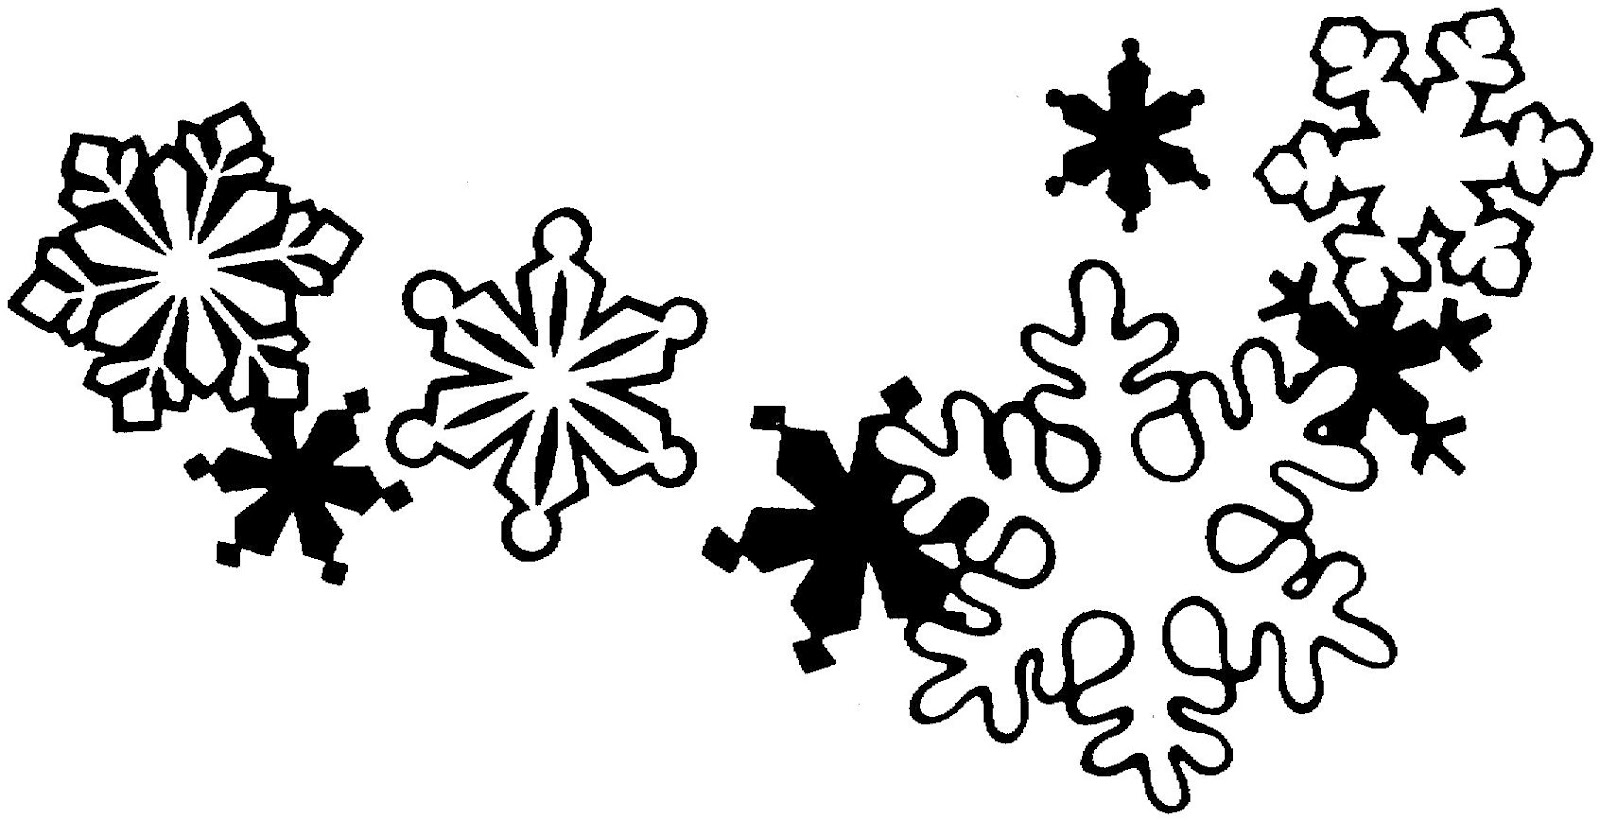 Snowflake Clipart Black And White Clipart Panda